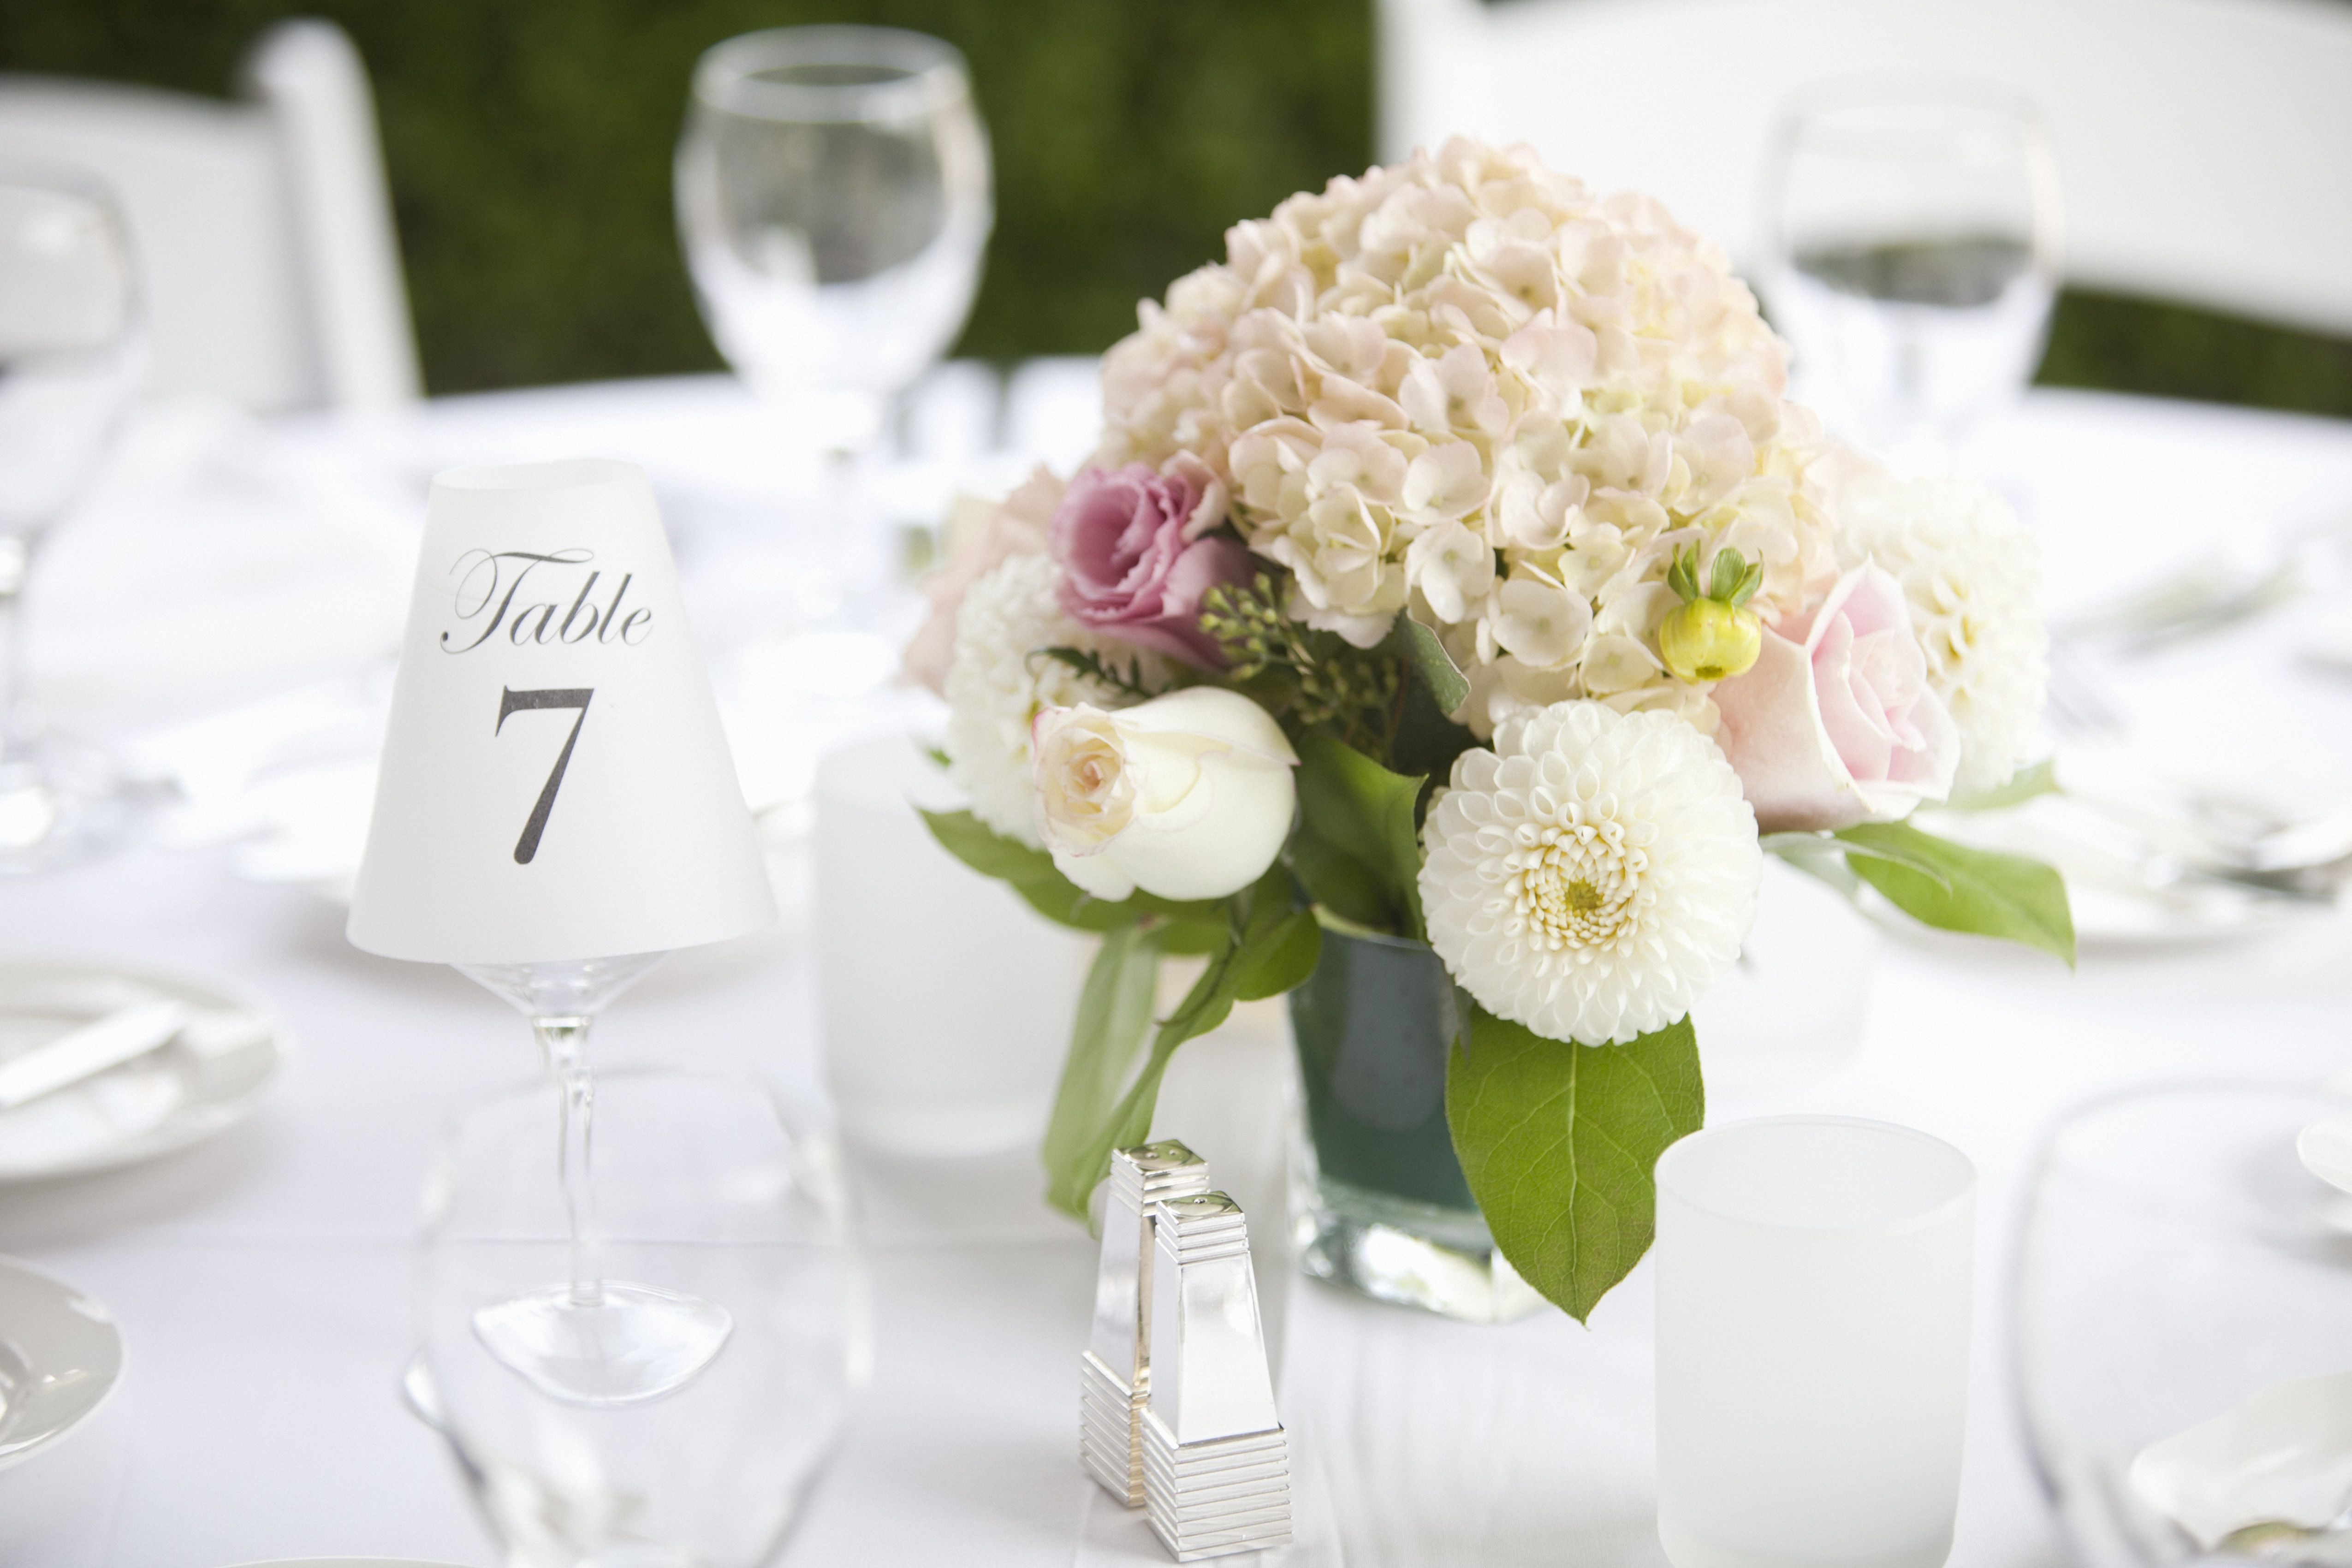 Centerpiece on table at wedding